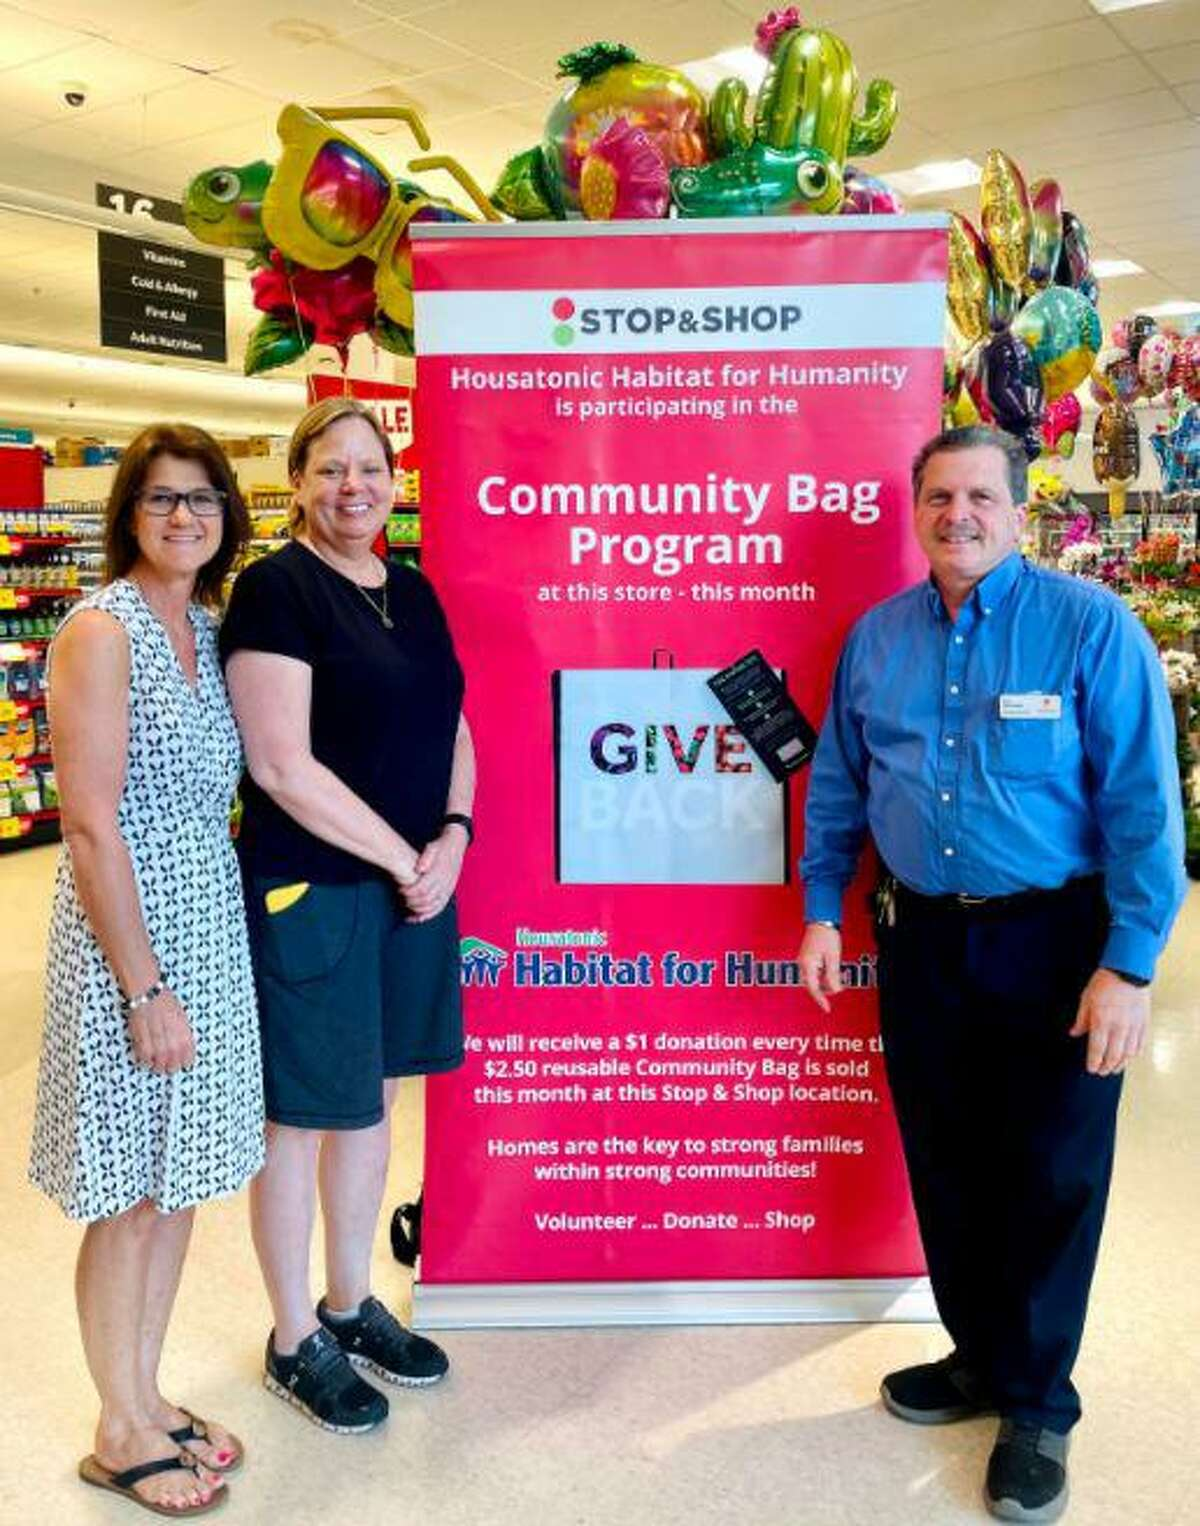 The non-profit organization Housatonic Habitat for Humanity is the recipient of the Stop & Shop grocery store chain company's Community Bag Program in Ridgefield. April van der Noll, and Karen Petrazzini, who are the nonprofit organization's ReStore warehouse supervisors, are pictured with Ronald Salvatore, who is a store manager at the Stop & Shop. This is the first time this year that the non-profit organization has been chosen as the nonprofit (organization) of the month for the program, which was on a hold for over a year due to the coronavirus pandemic.